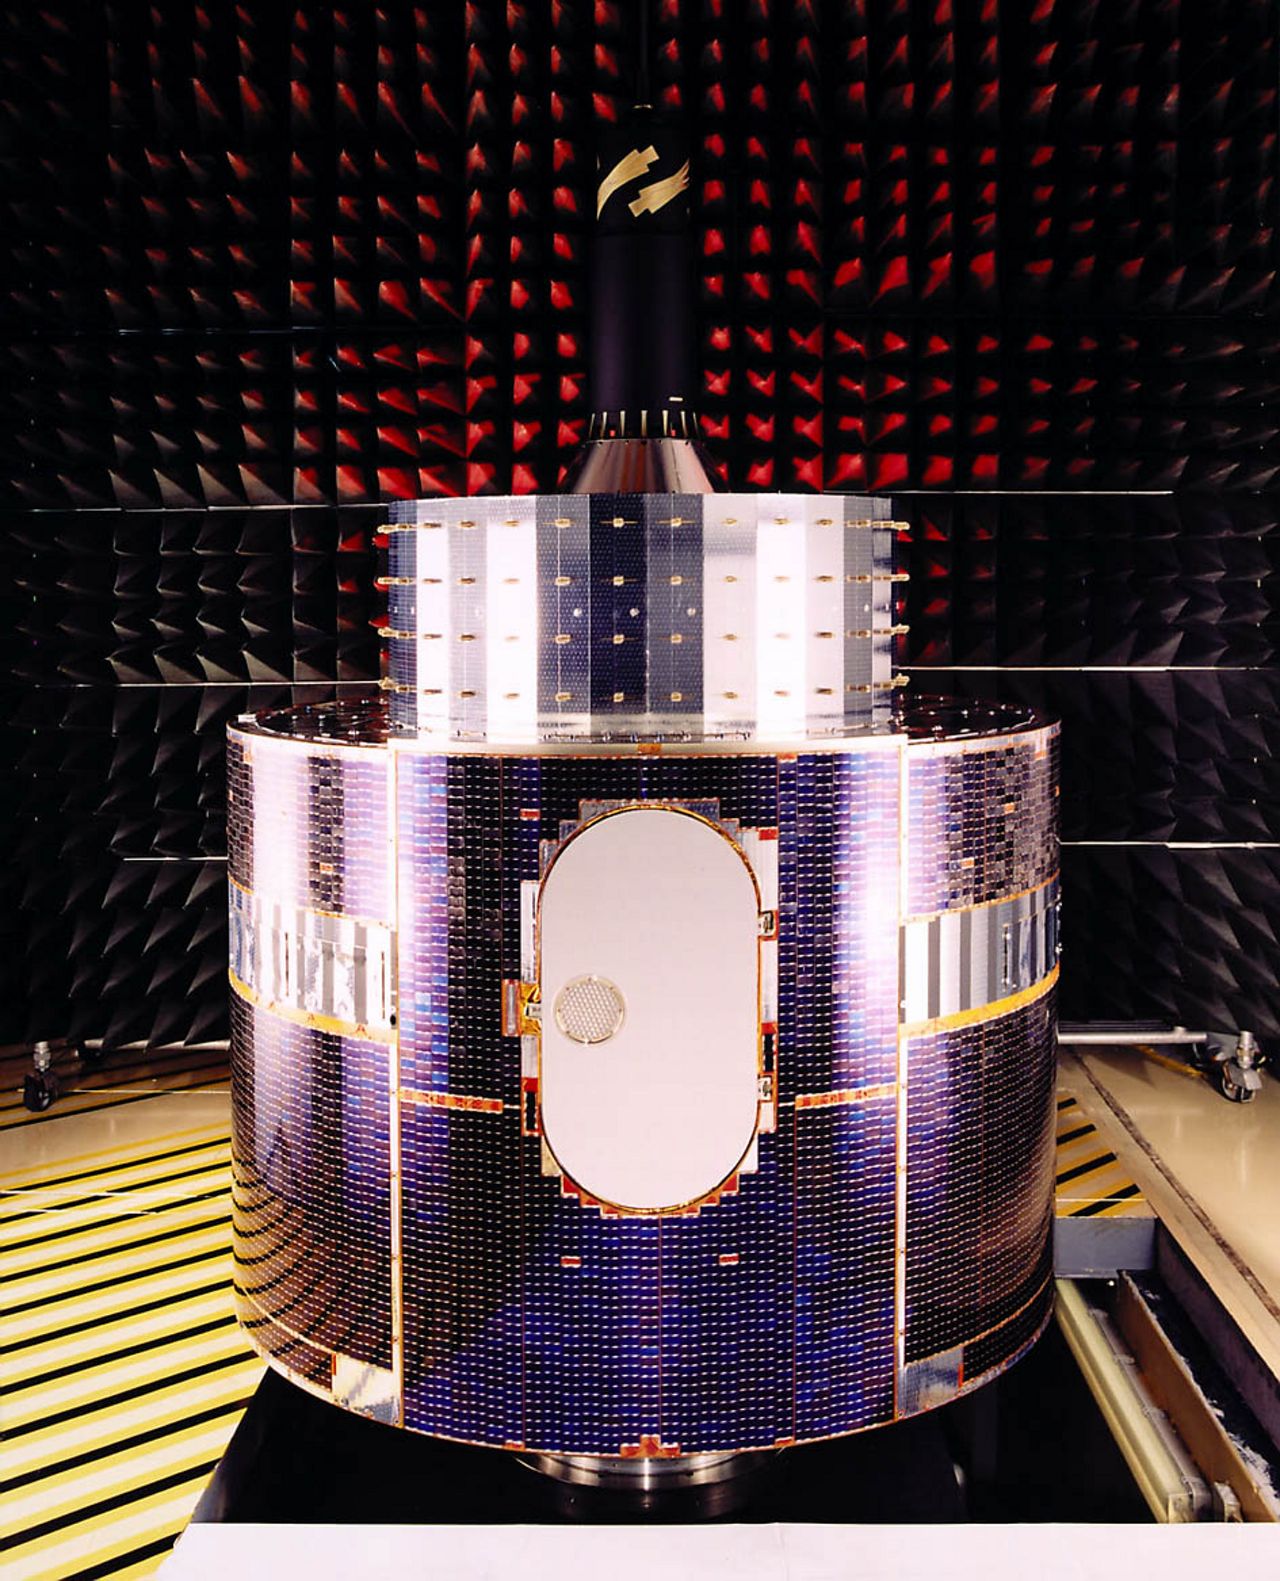 A detailed view of Europe's first weather satellite, Meteosat.